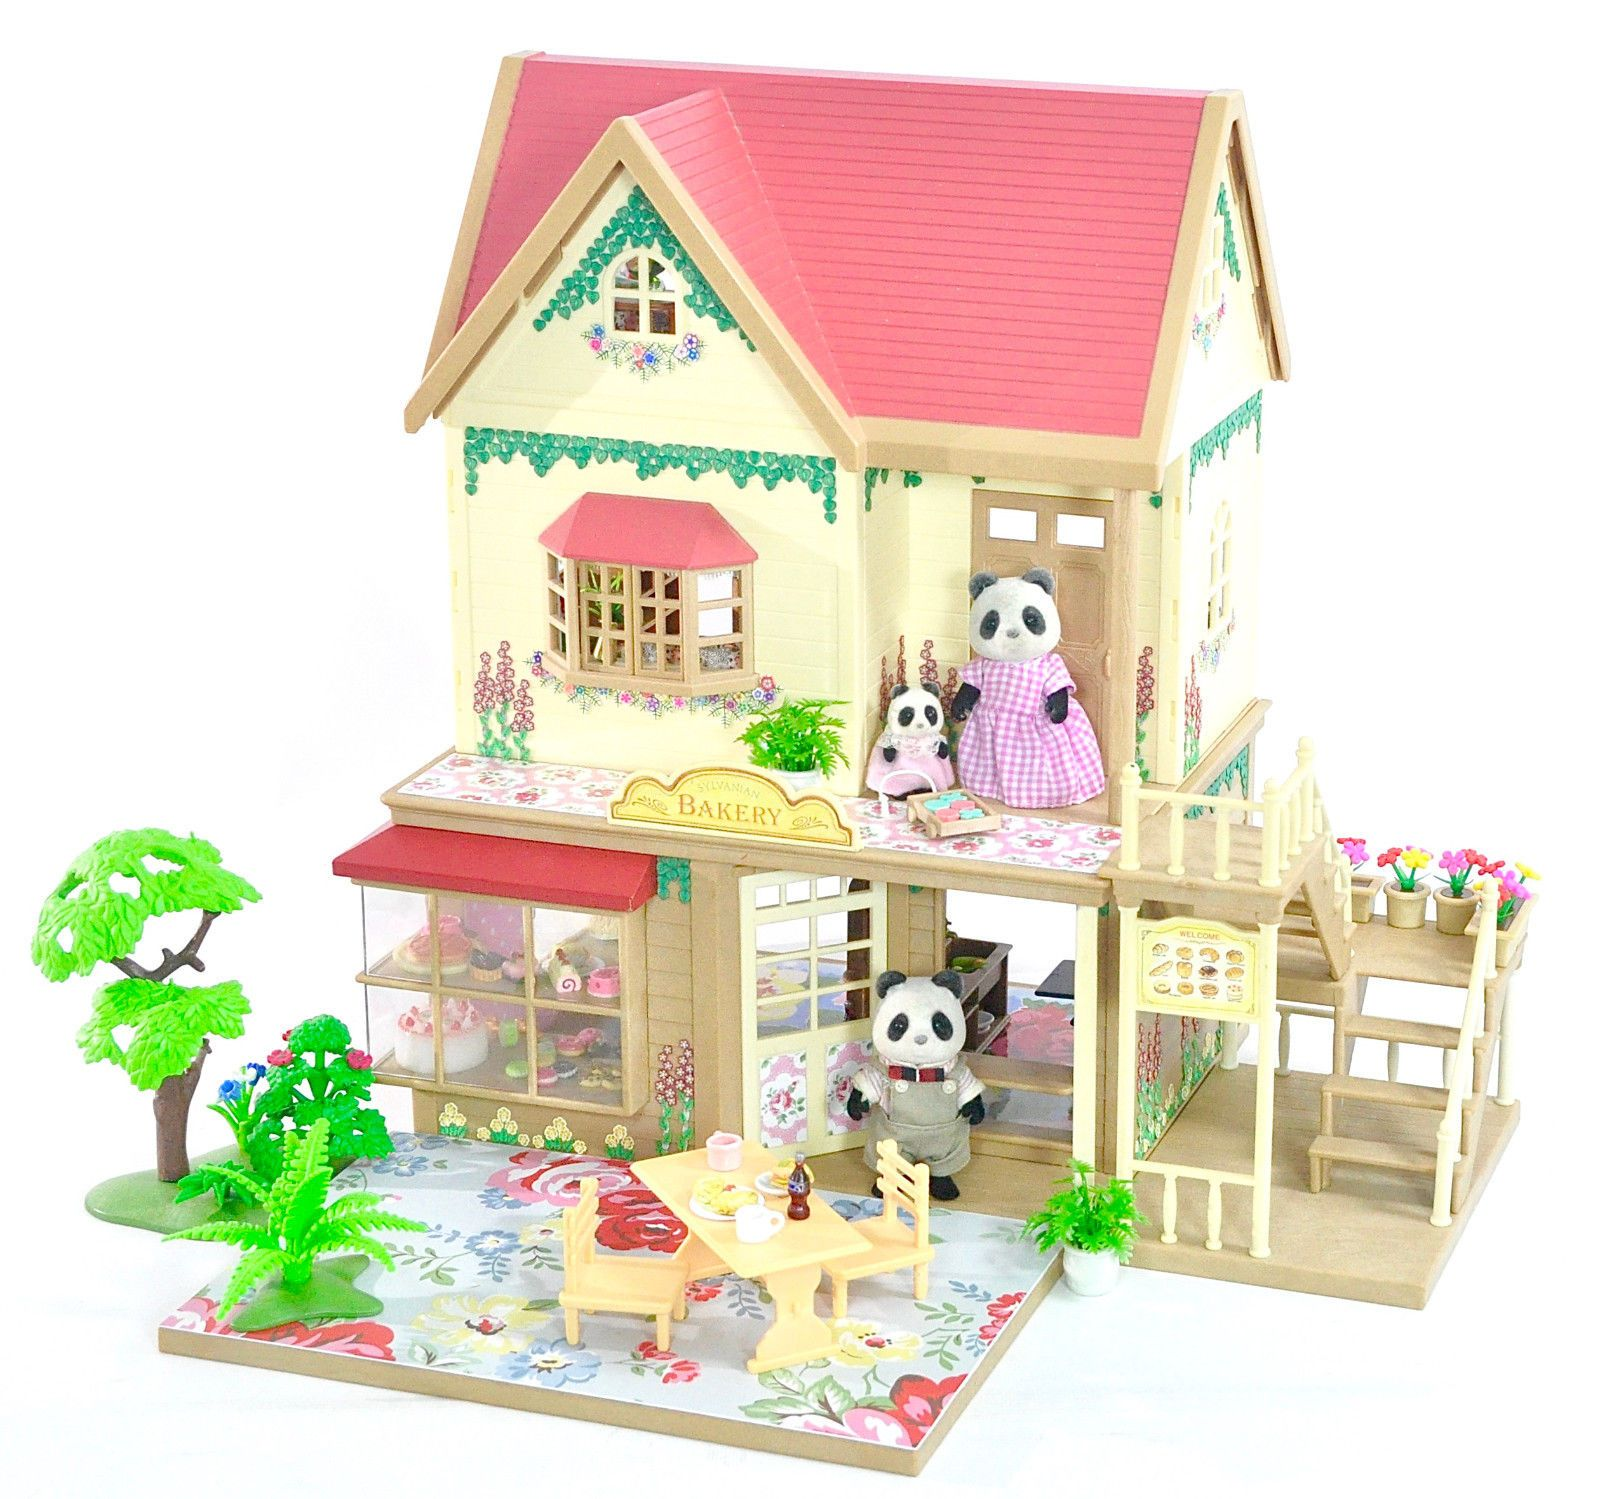 Fistuff sylvanian families decorated house vintage bakery figures lots ebay